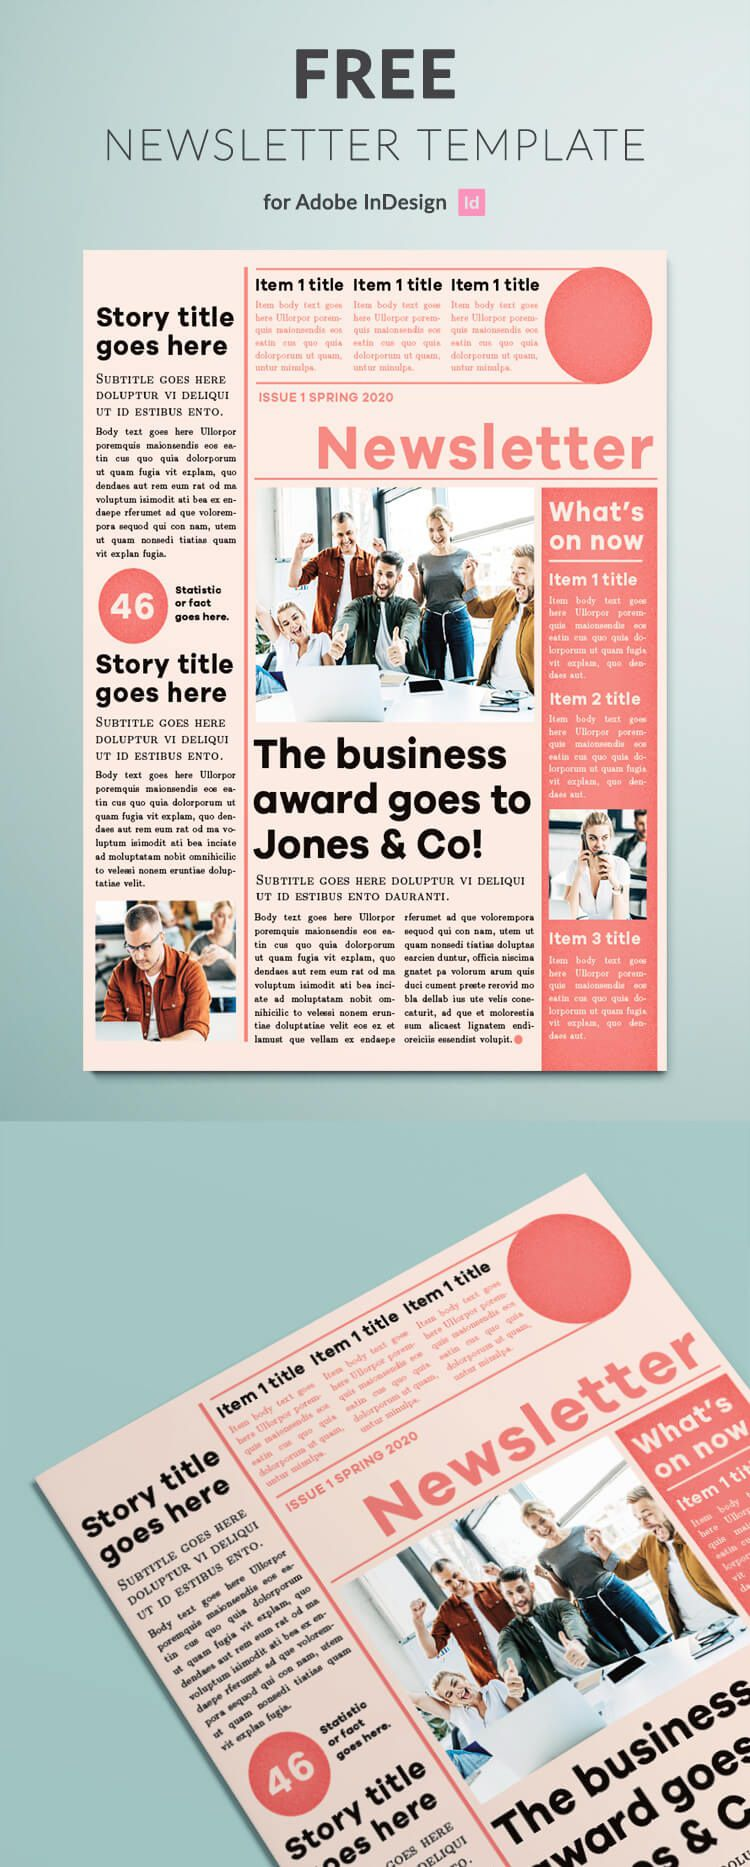 008 Awful Indesign Newsletter Template Free High Def  Cs6 Email Adobe DownloadFull